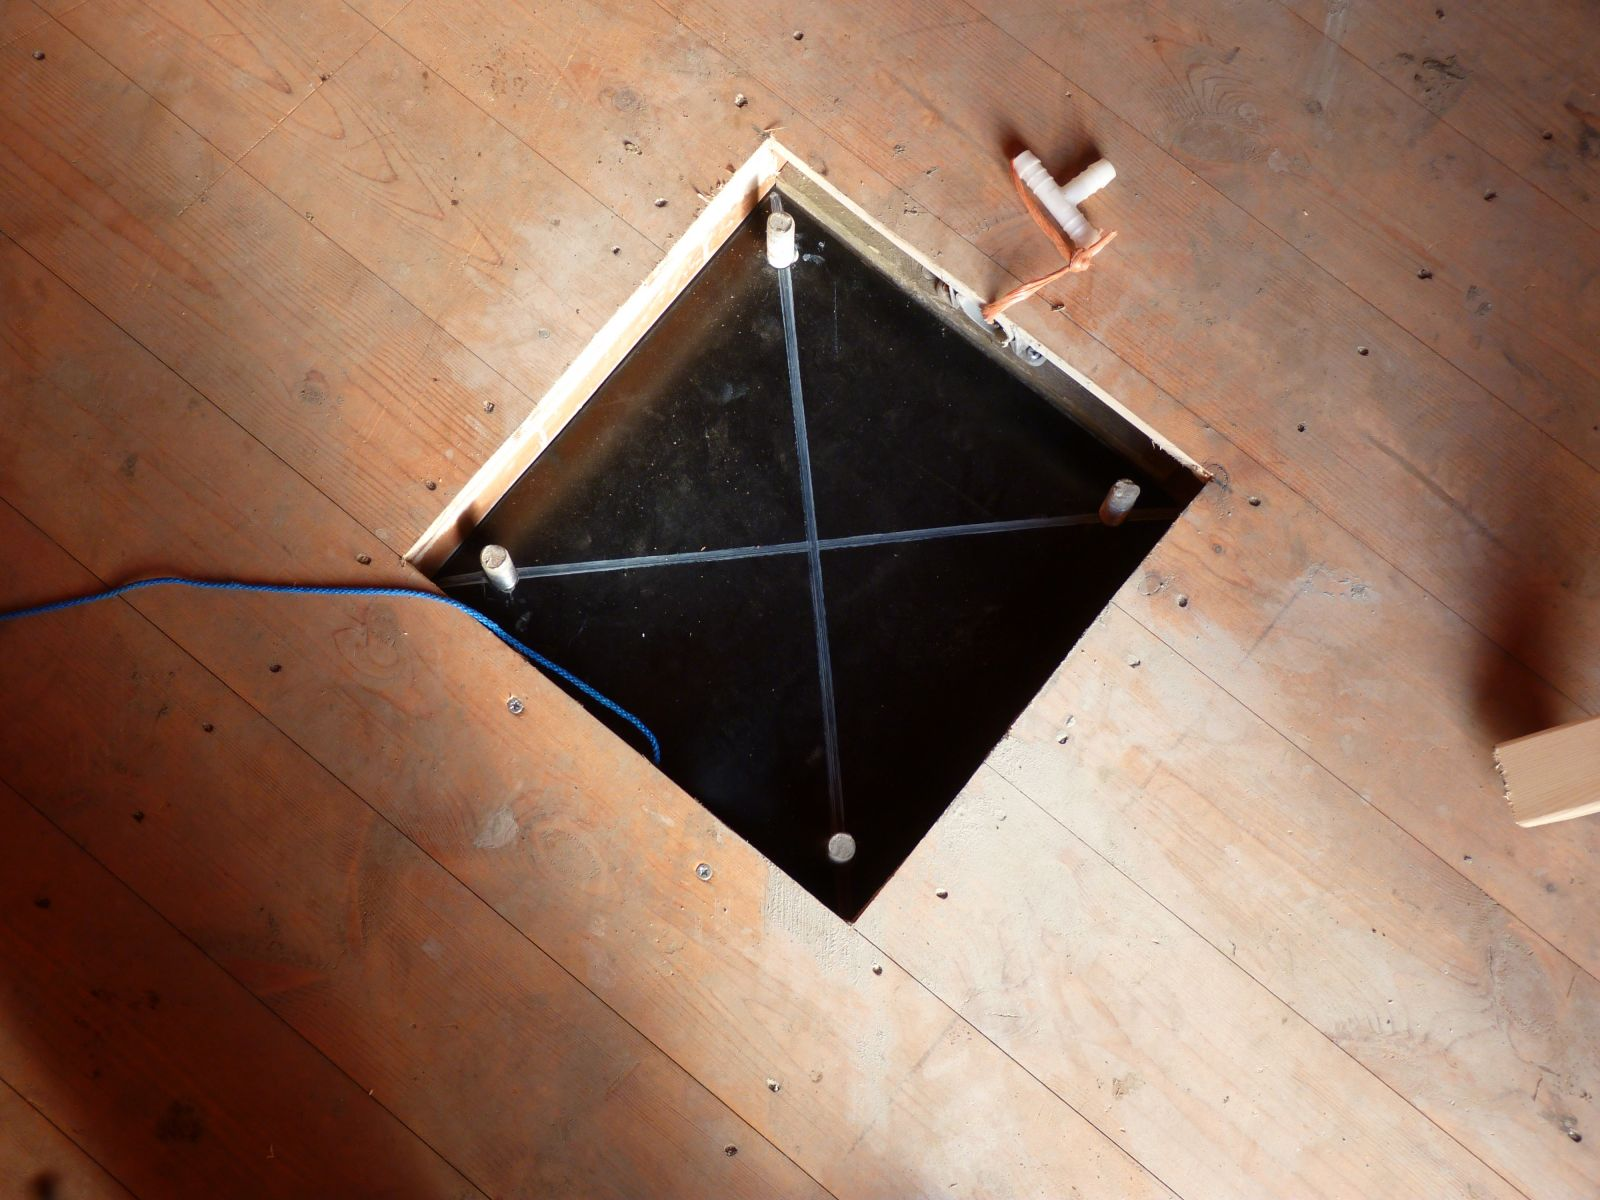 Pier mount rubber, approx 10mm thick, to help isolate the metal pier & cut down condensation.